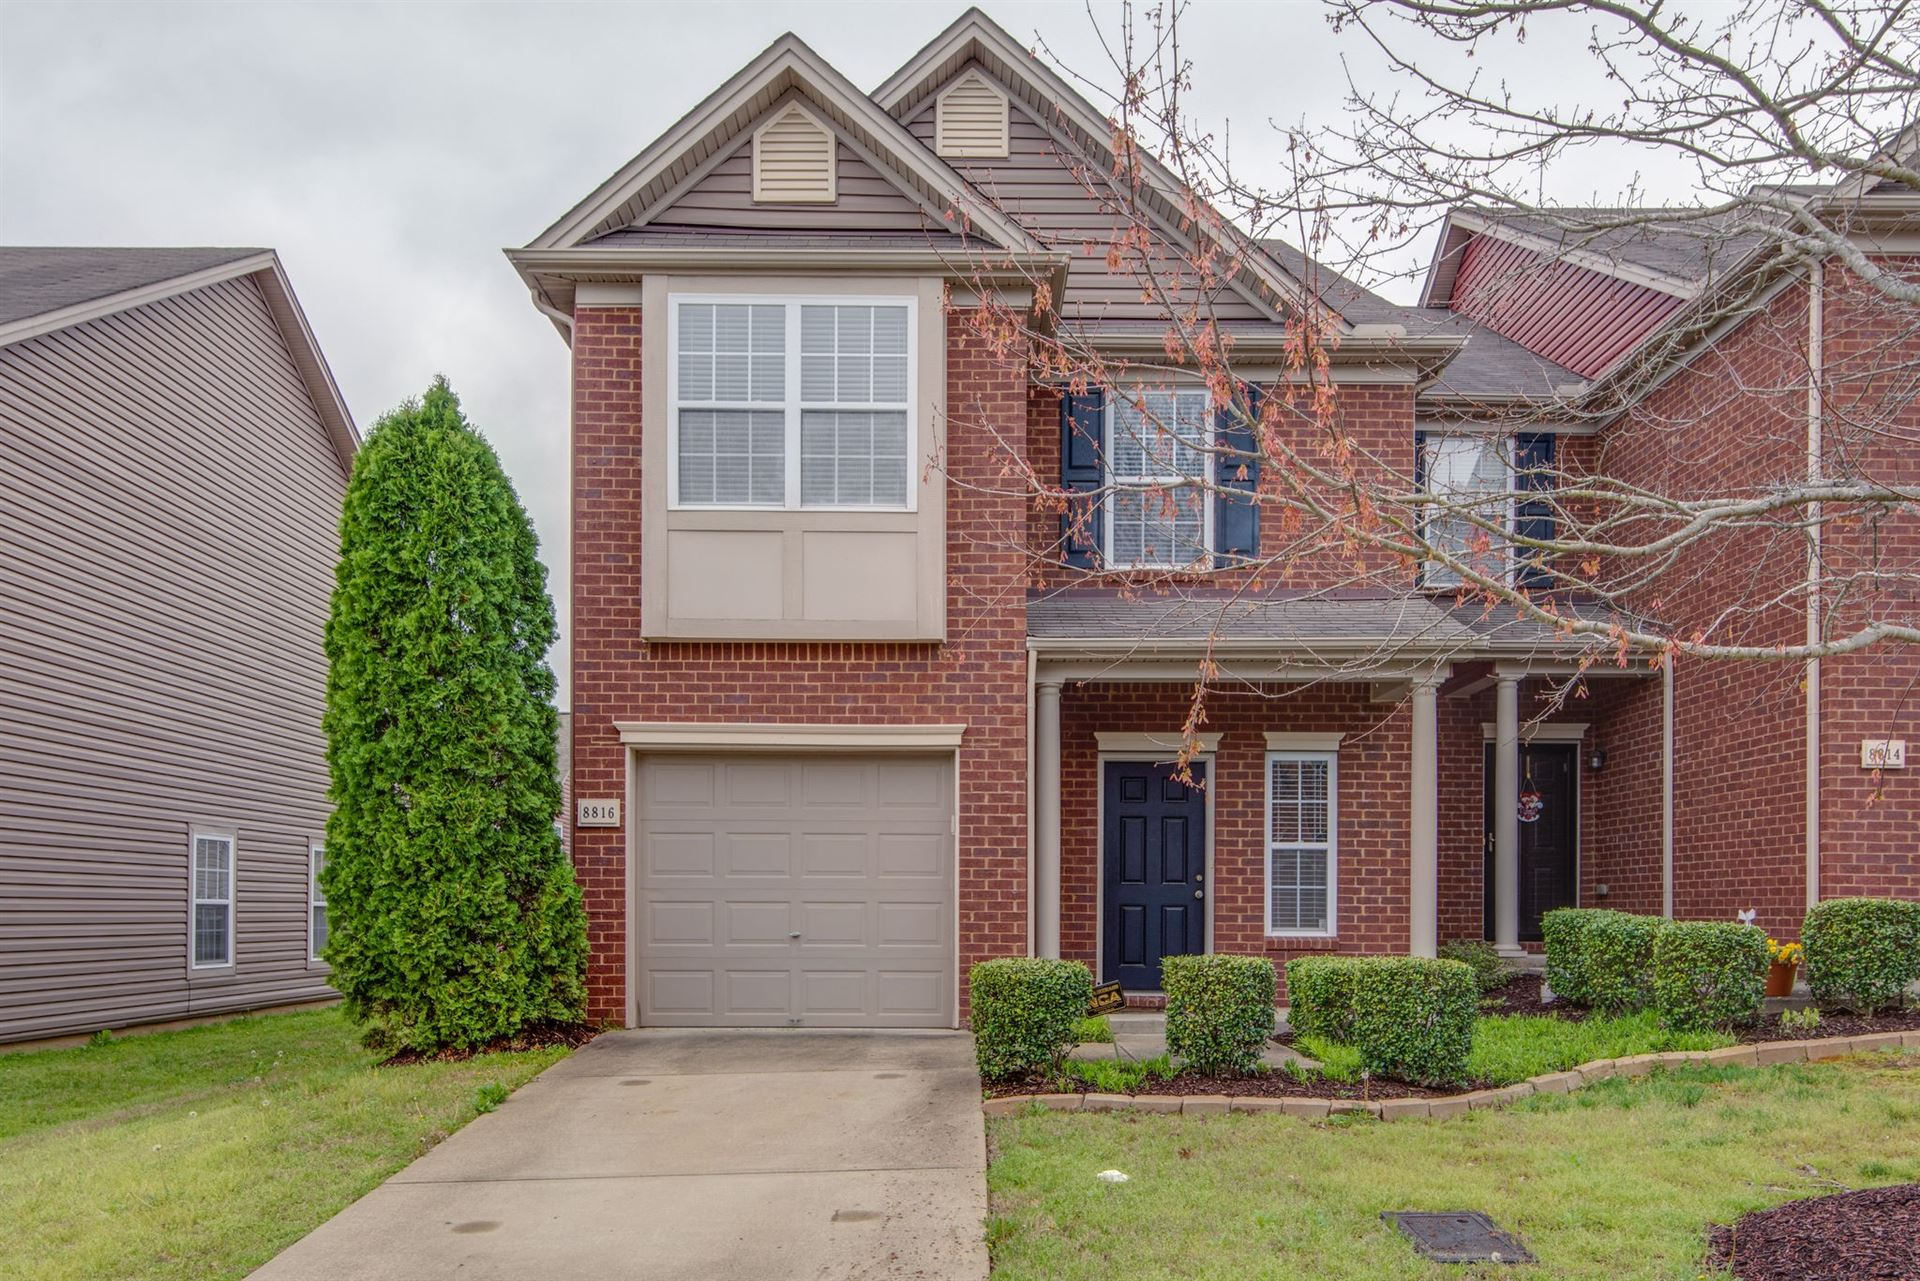 Photo of 8816 Dolcetto Grv, Brentwood, TN 37027 (MLS # 2177939)